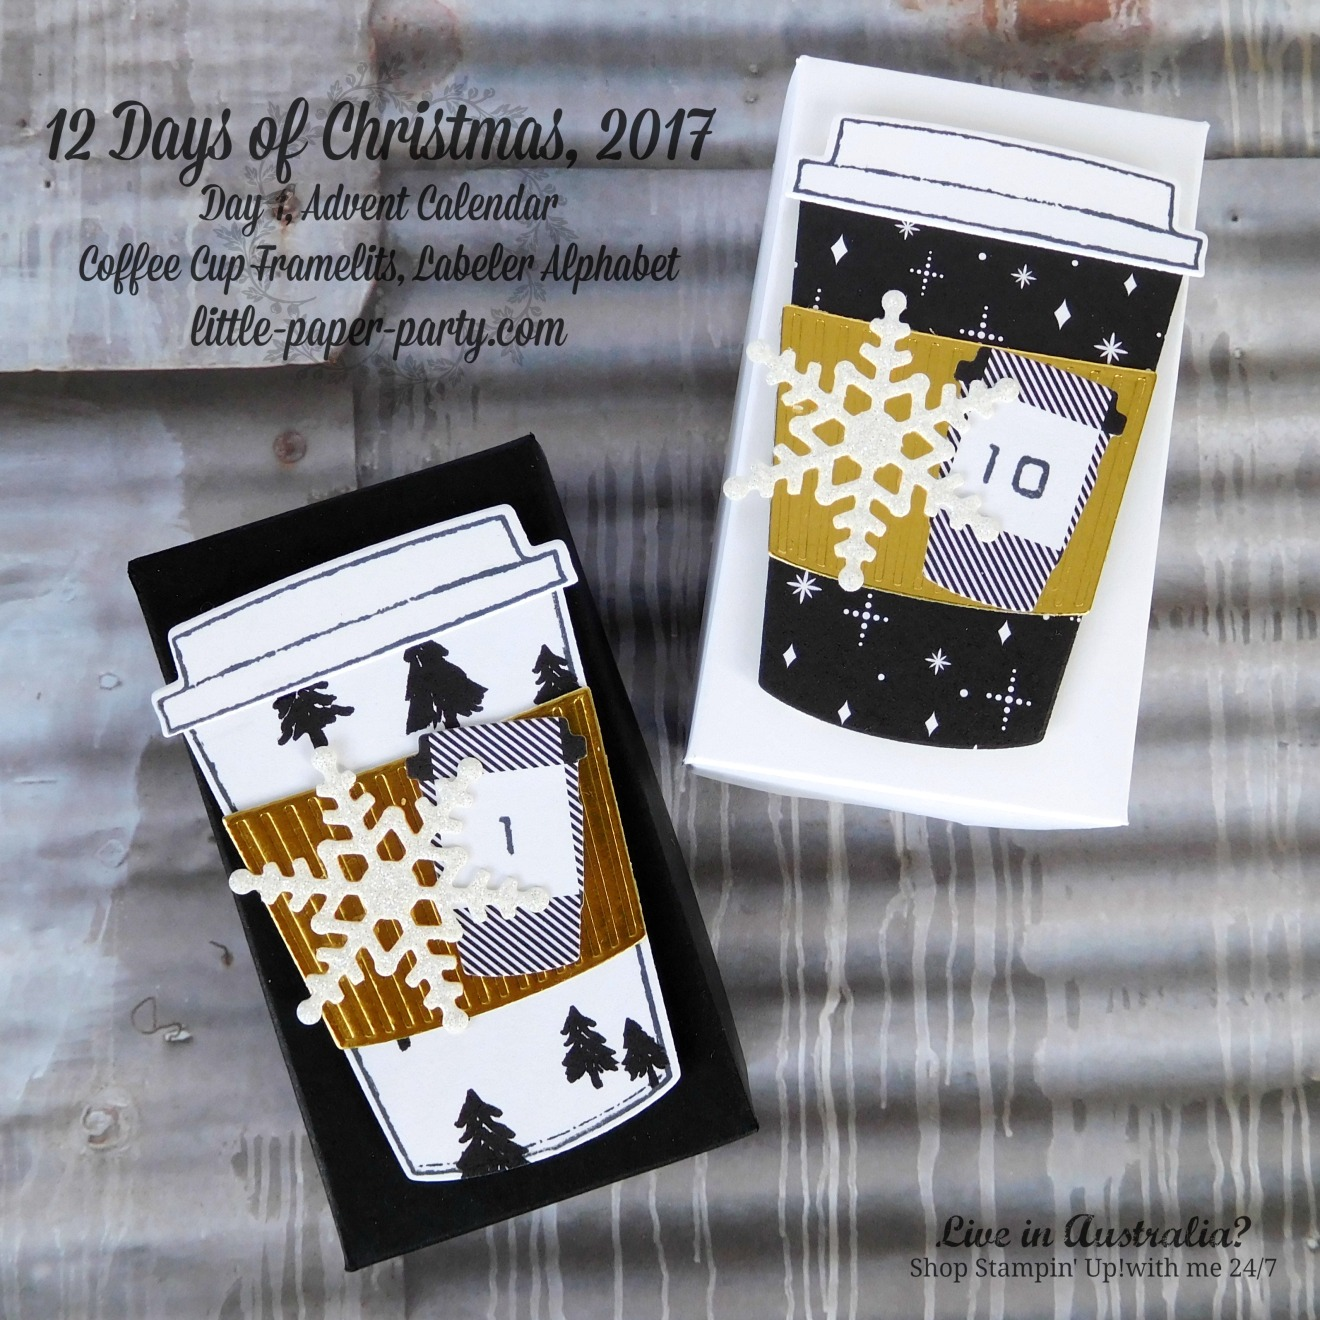 Little Paper Party, 12 Days of Christmas 2017, Advent Calendar, Coffee Cup Framelits, Labeler Alphabet, #3.jpg